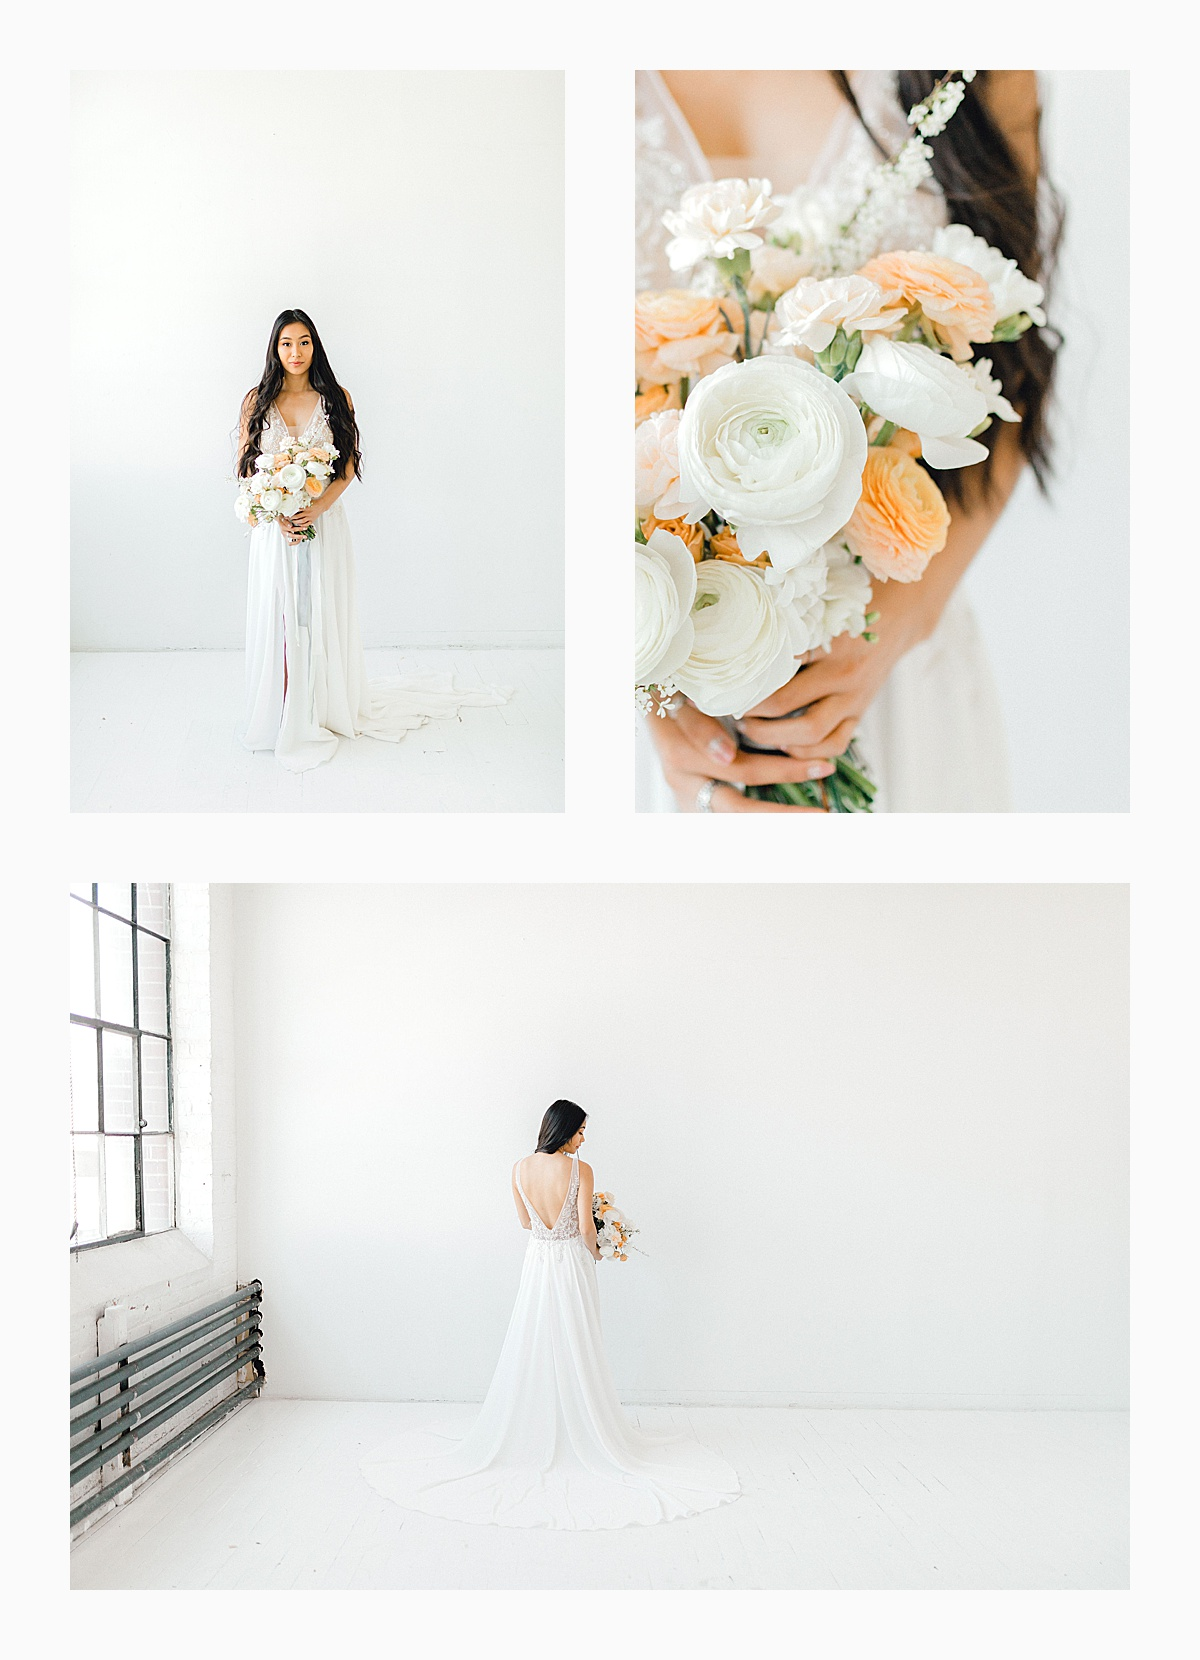 The Bemis Building in downtown Seattle is one of my favorite places to use for photo shoots!  This styled bridal shoot with touches of peach and white was dreamy.  #emmarosecompany #kindredpresets #seattlebride_0013.jpg